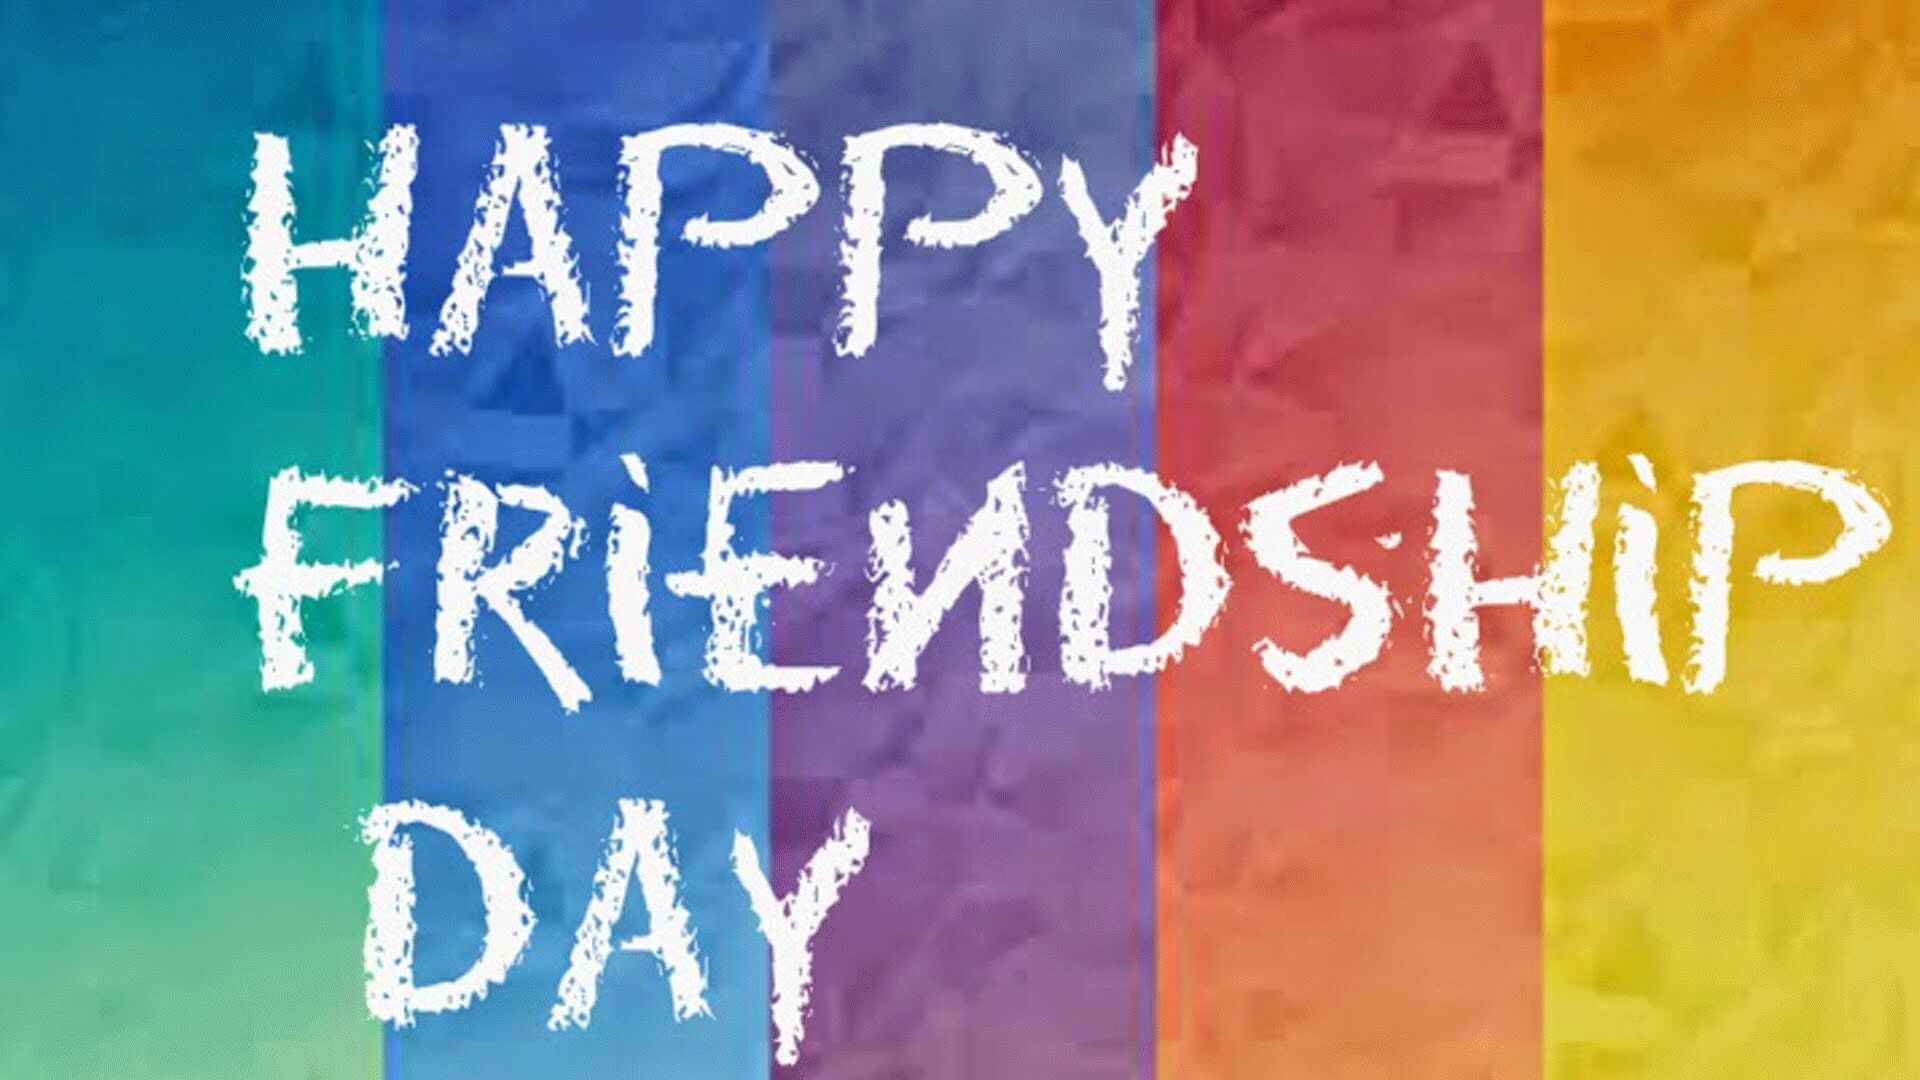 happy friendship day weaving design text image wallpaper